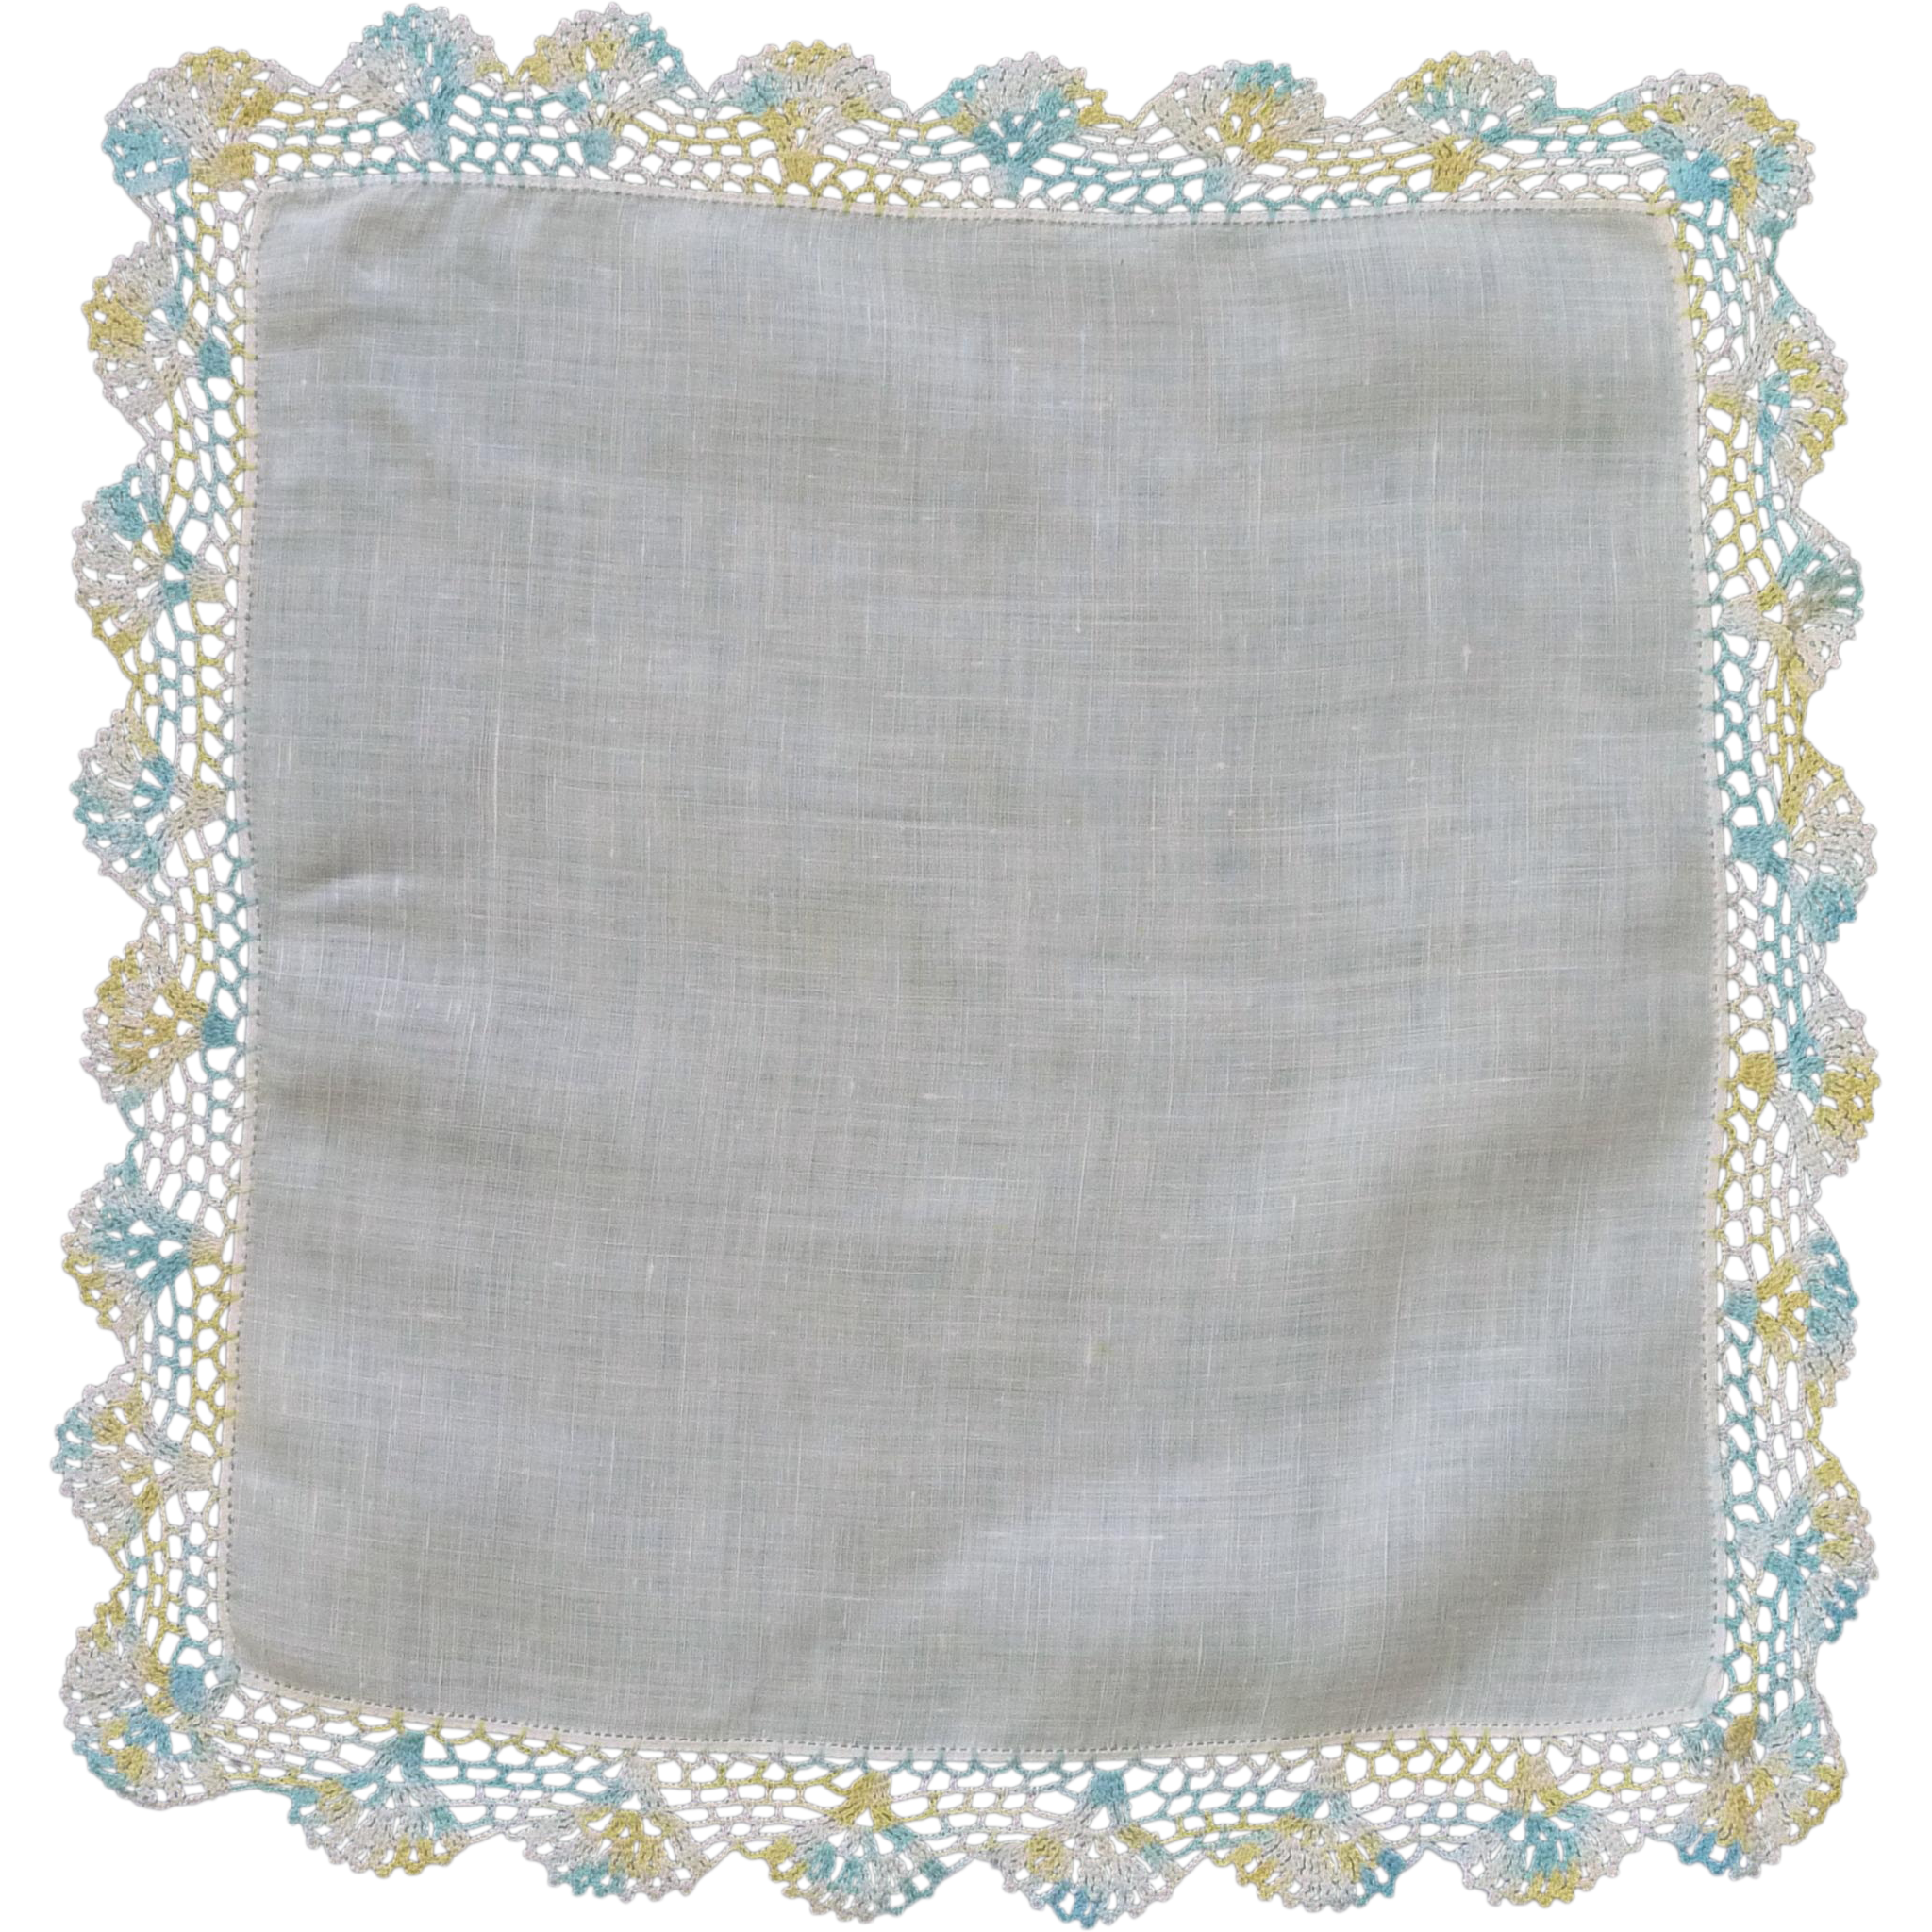 Beautiful Crotched Border on White Linen Handkerchief